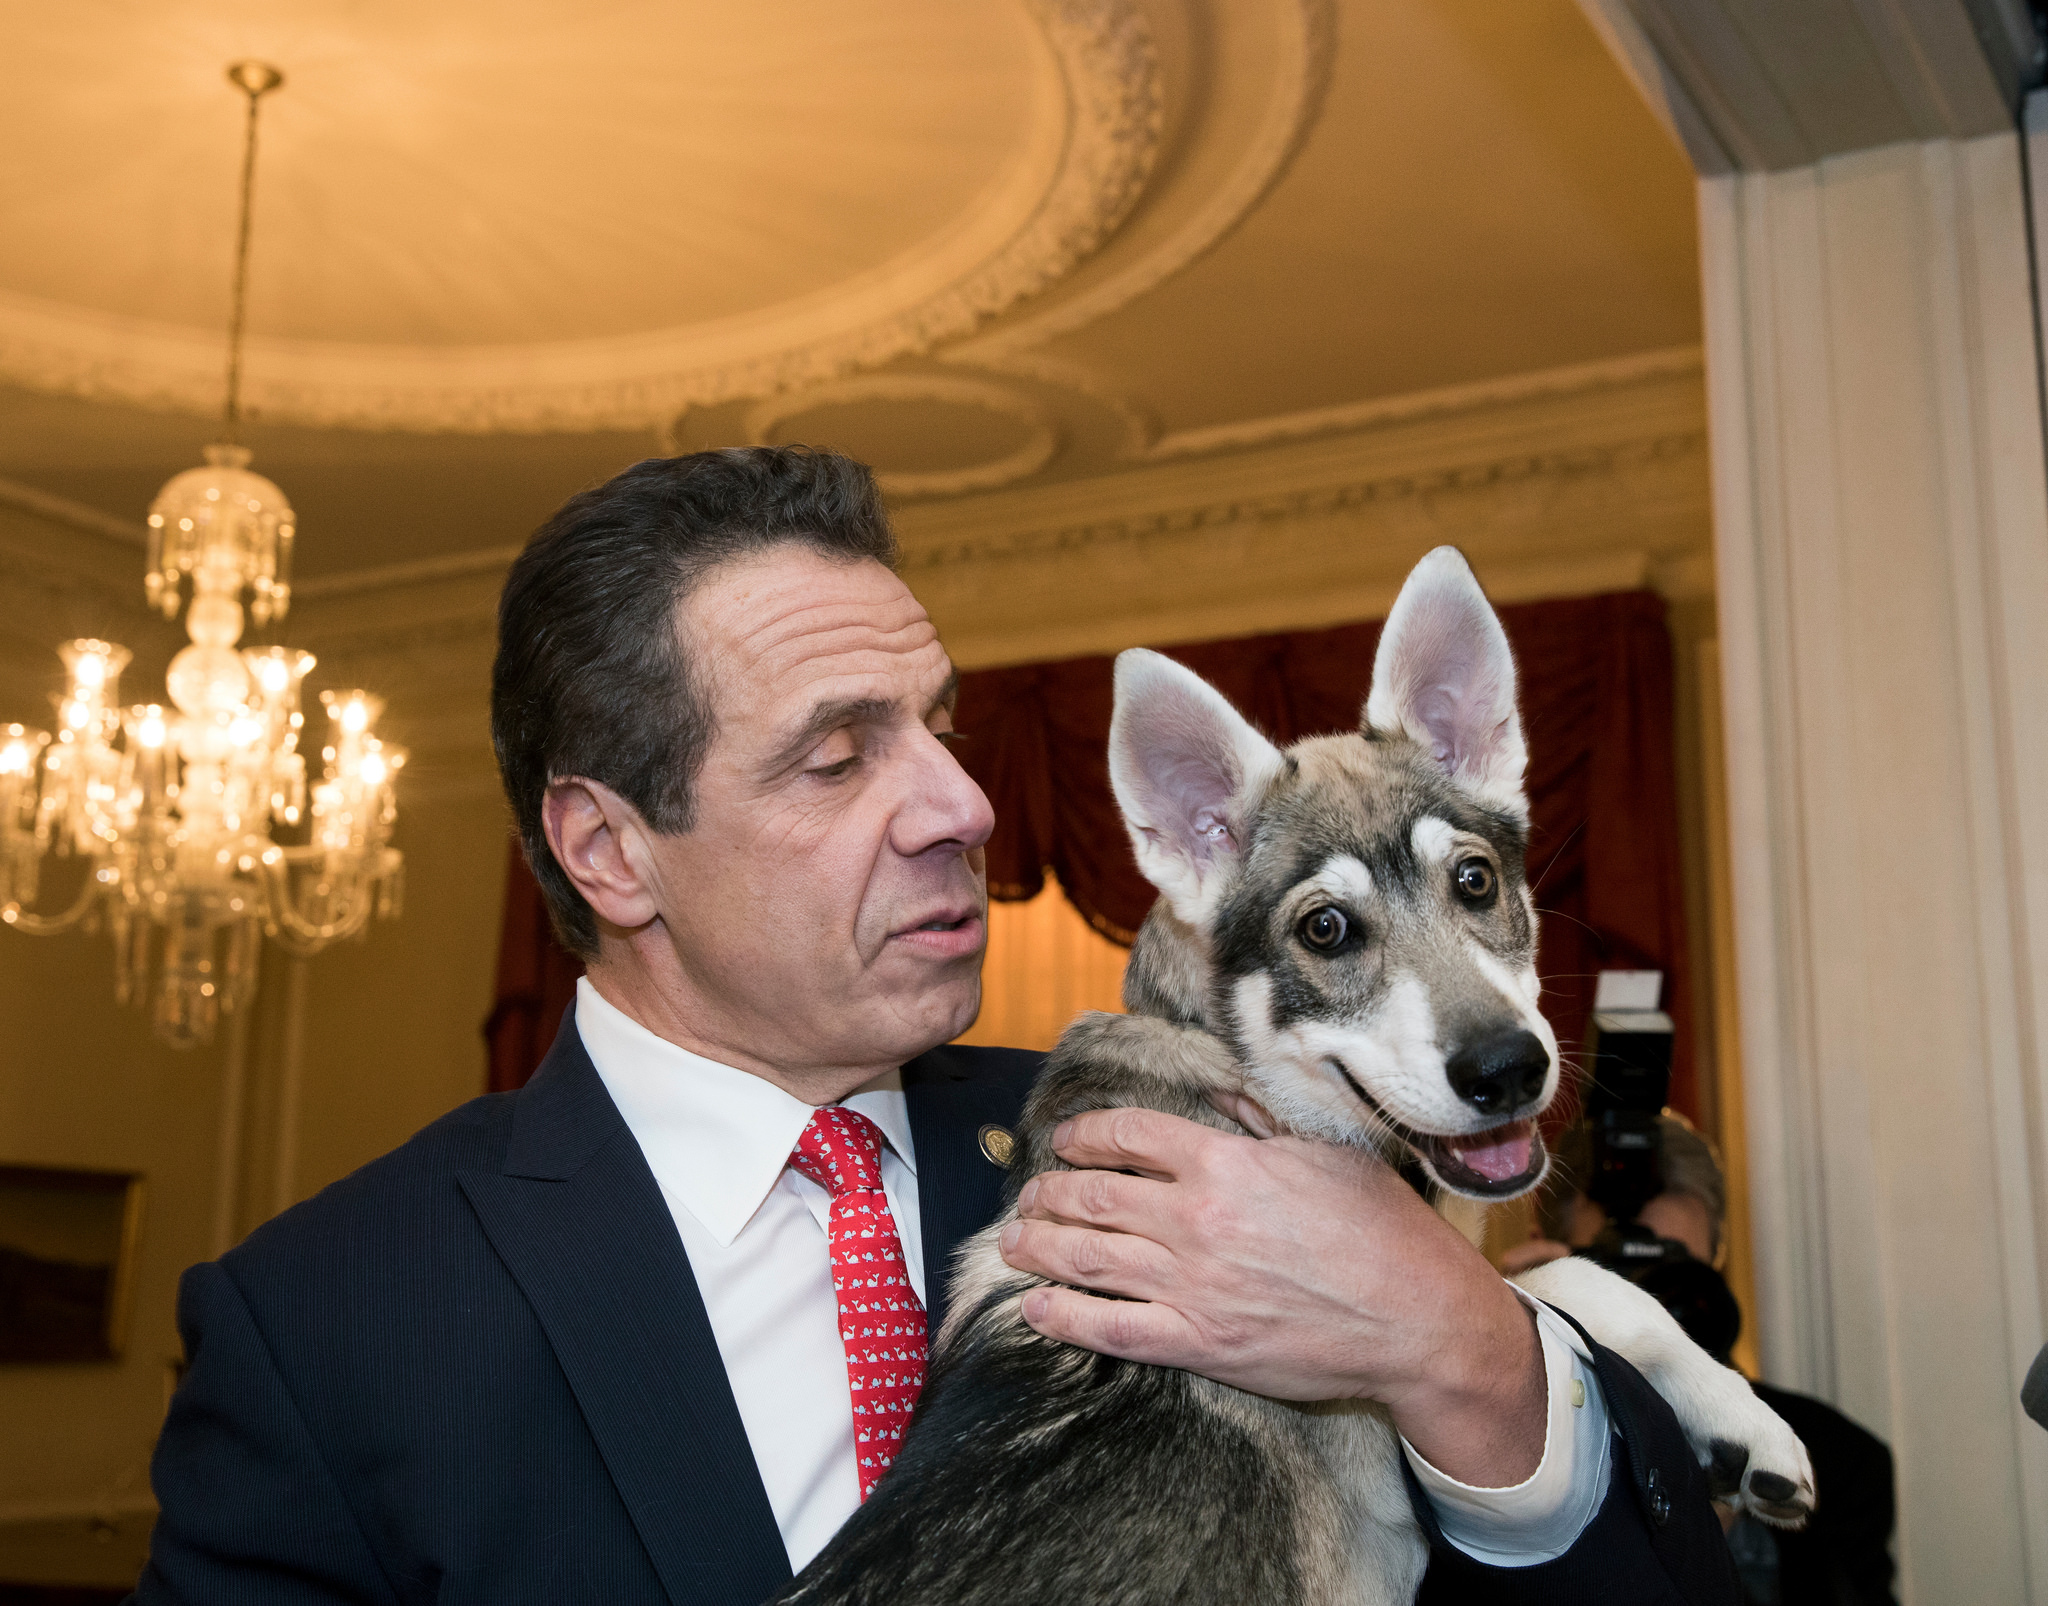 "<div class=""meta image-caption""><div class=""origin-logo origin-image wabc""><span>WABC</span></div><span class=""caption-text"">Governor Andrew Cuomo introduced Captain, a 14-week-old Siberian, Shephard and Malamute mix puppy.</span></div>"